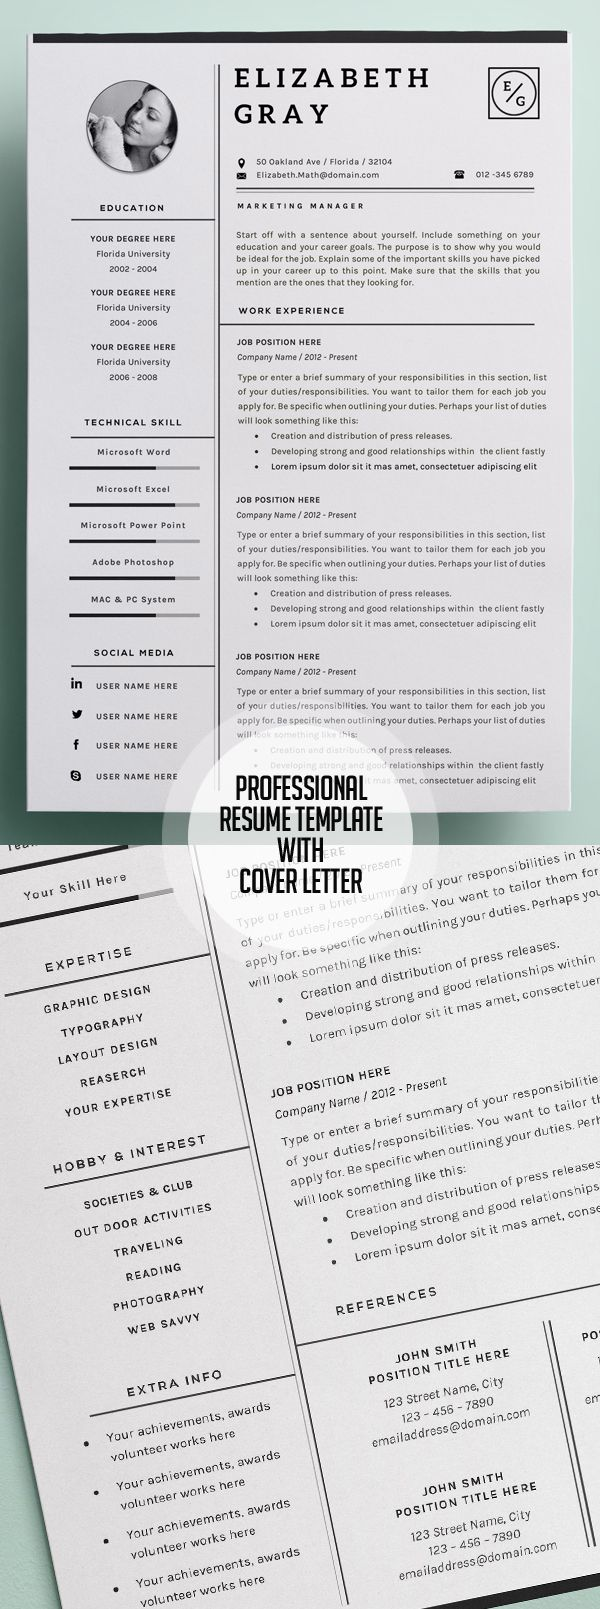 Opposenewapstandardsus  Stunning  Resume Ideas On Pinterest  Resume Resume Templates And  With Entrancing Professional And Modern Resume Template With Page Cover Cvtemplate With Awesome Build Resume Online Also Resume Skill Examples In Addition What Is Cv Resume And Skills Examples For Resume As Well As Entry Level Resume Objective Additionally Leasing Agent Resume From Pinterestcom With Opposenewapstandardsus  Entrancing  Resume Ideas On Pinterest  Resume Resume Templates And  With Awesome Professional And Modern Resume Template With Page Cover Cvtemplate And Stunning Build Resume Online Also Resume Skill Examples In Addition What Is Cv Resume From Pinterestcom